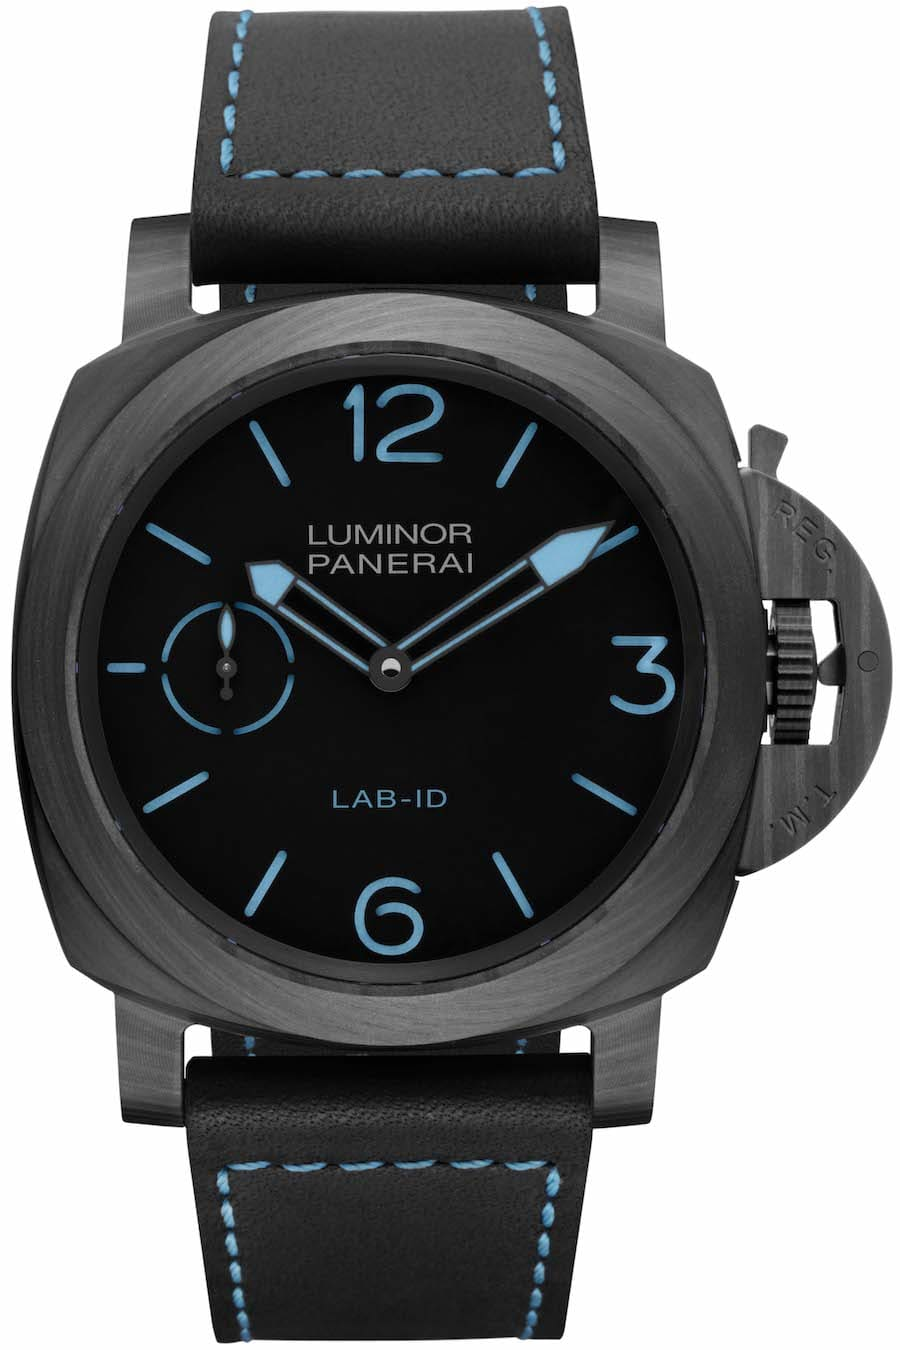 Panerai: LAB-ID Luminor 1950 Carbotech 3 Days 49 Millimeter PAM00700